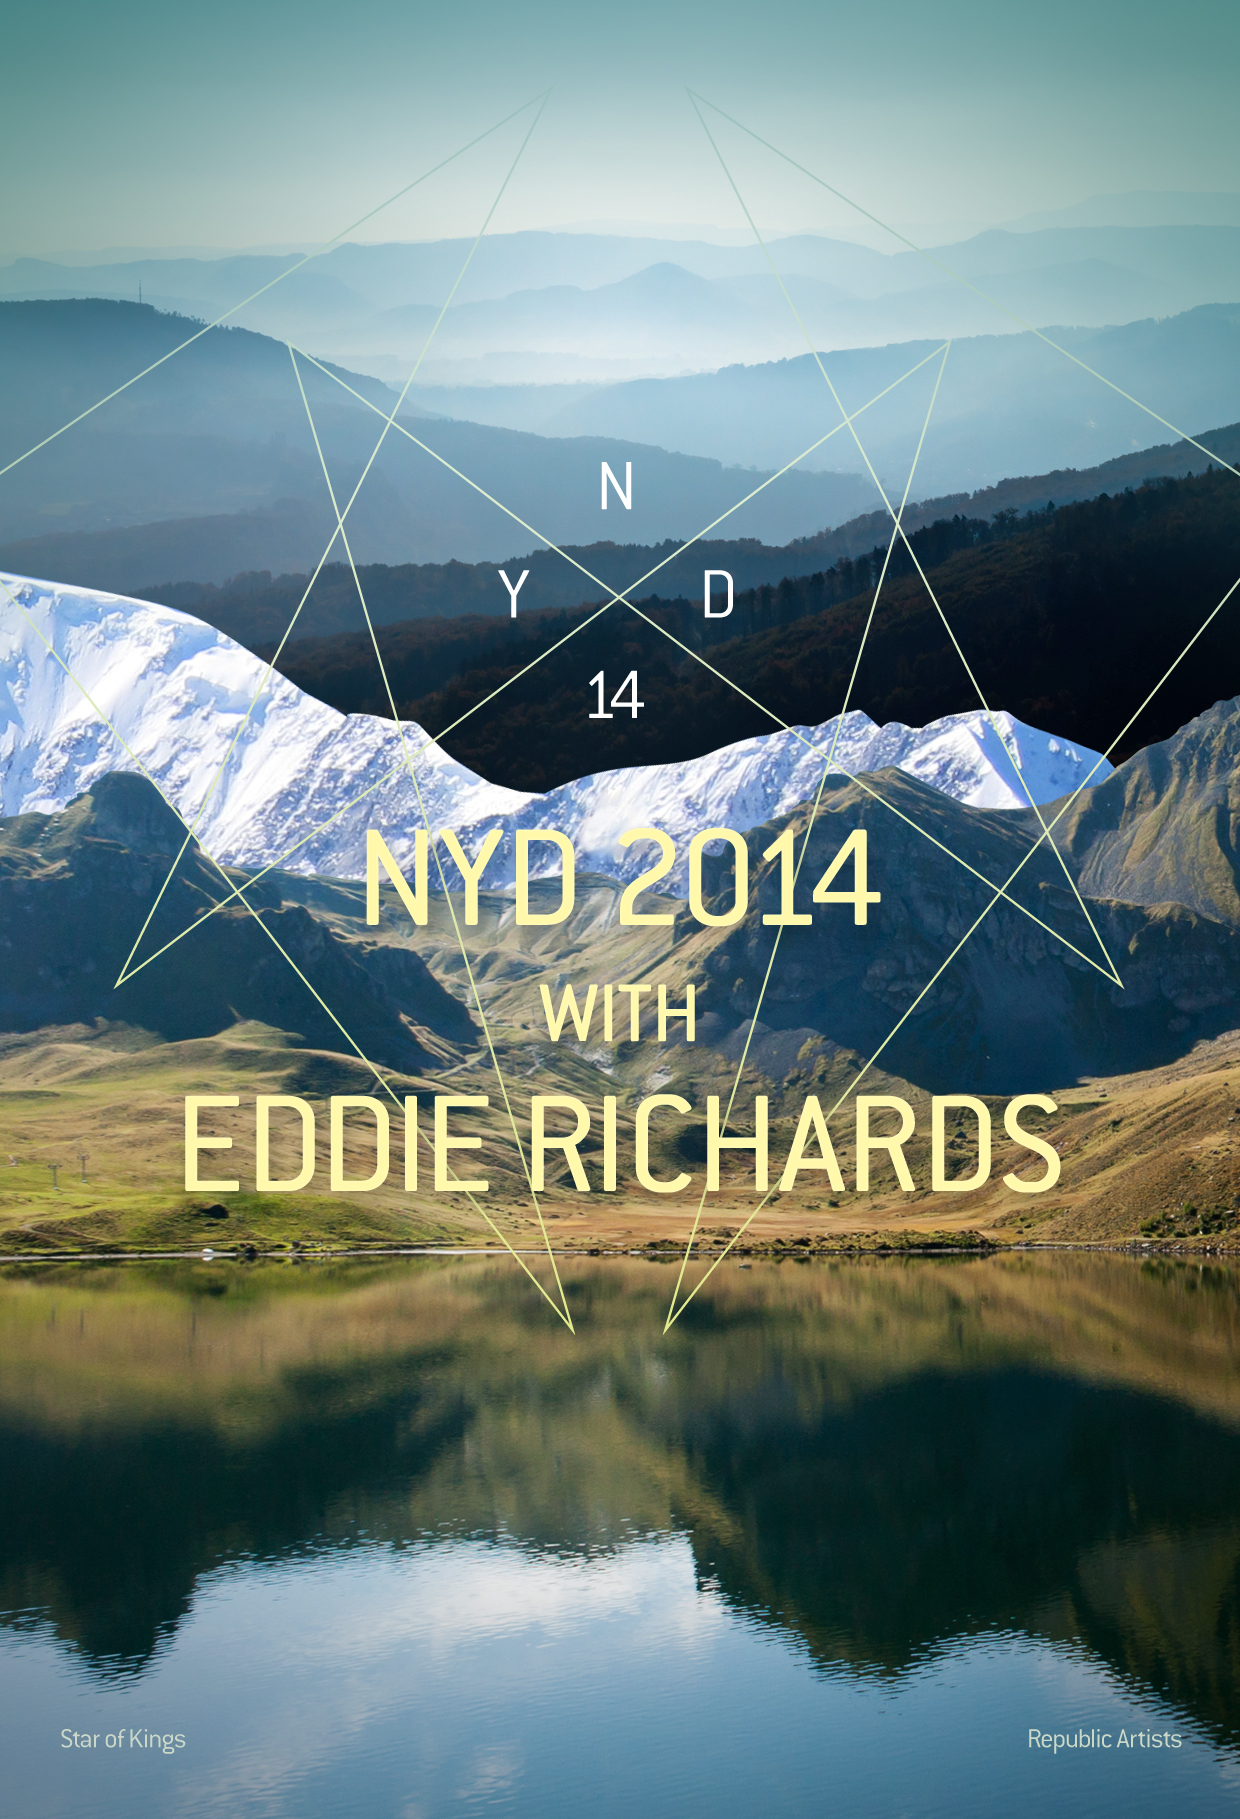 NYD with Eddie Richards